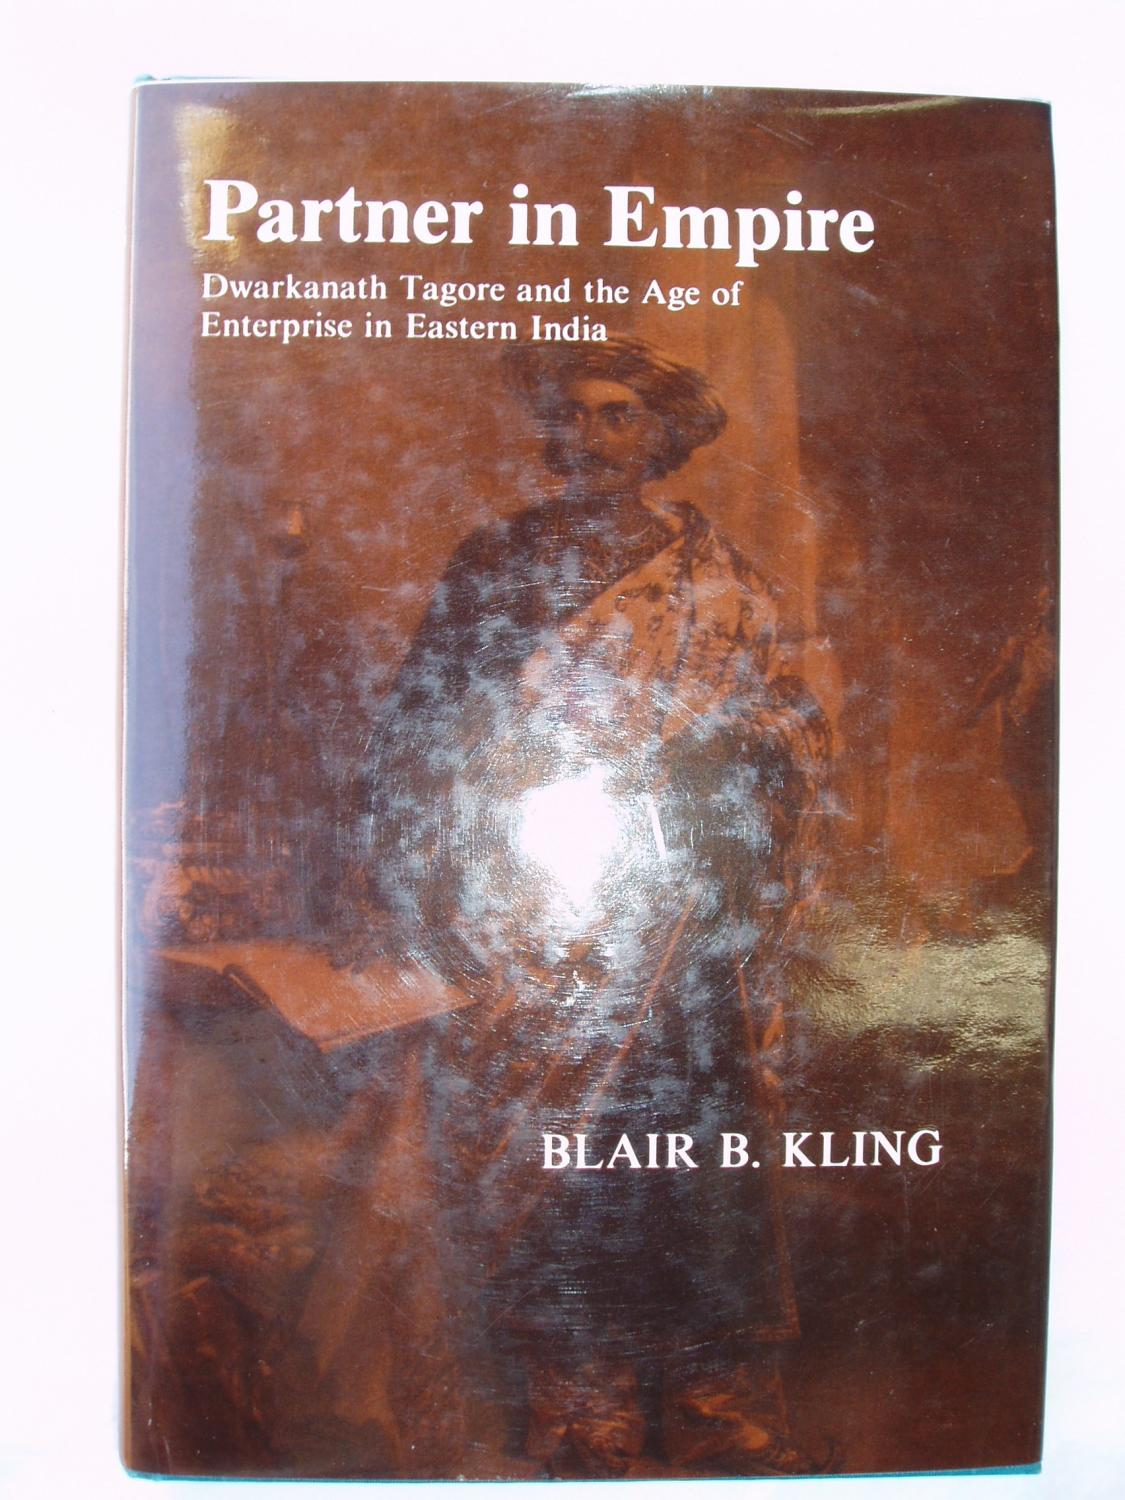 Partner in Empire: Dwarkanath Tagore and the Age of Enterprise in Eastern India